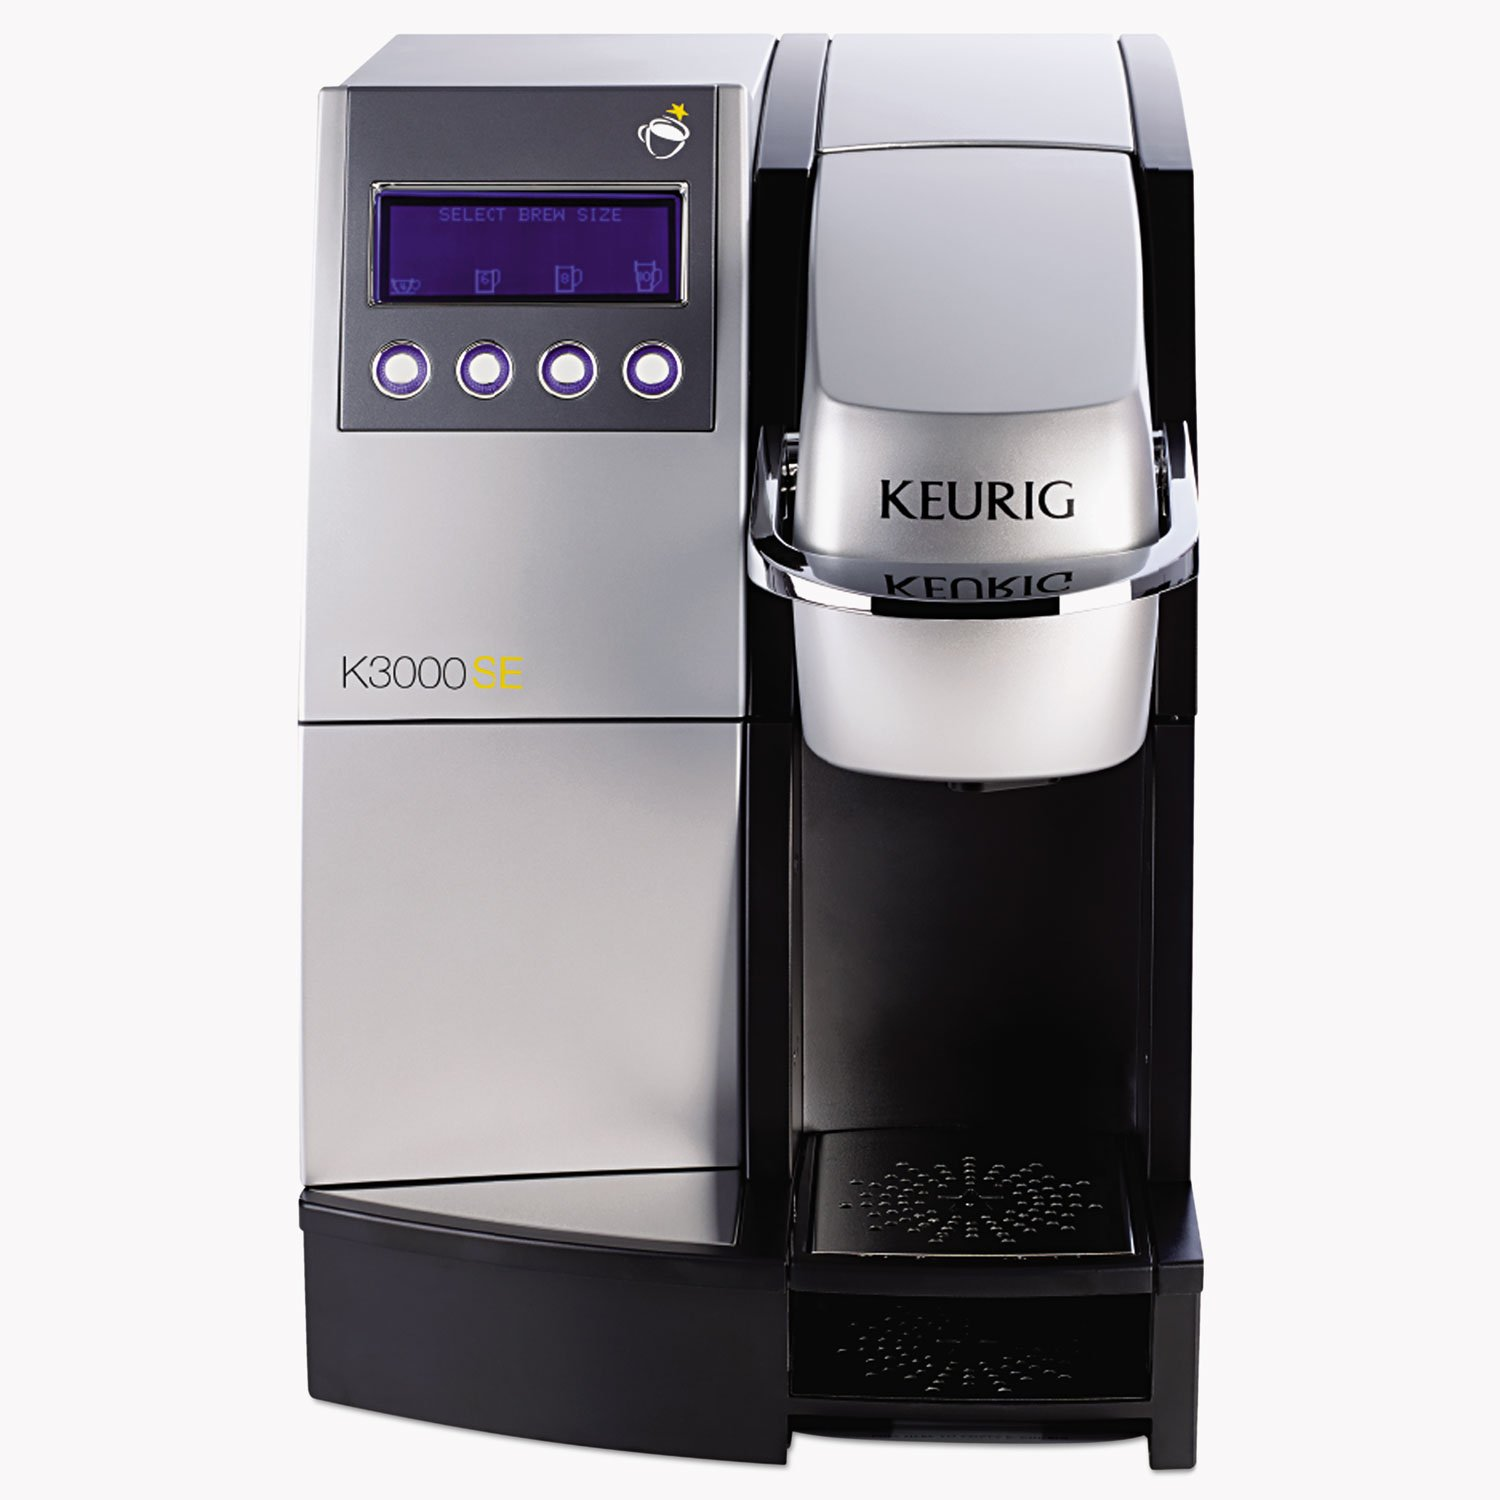 Keurig K3000SE Commercial Brewing System - 1400 W - Black, Silve